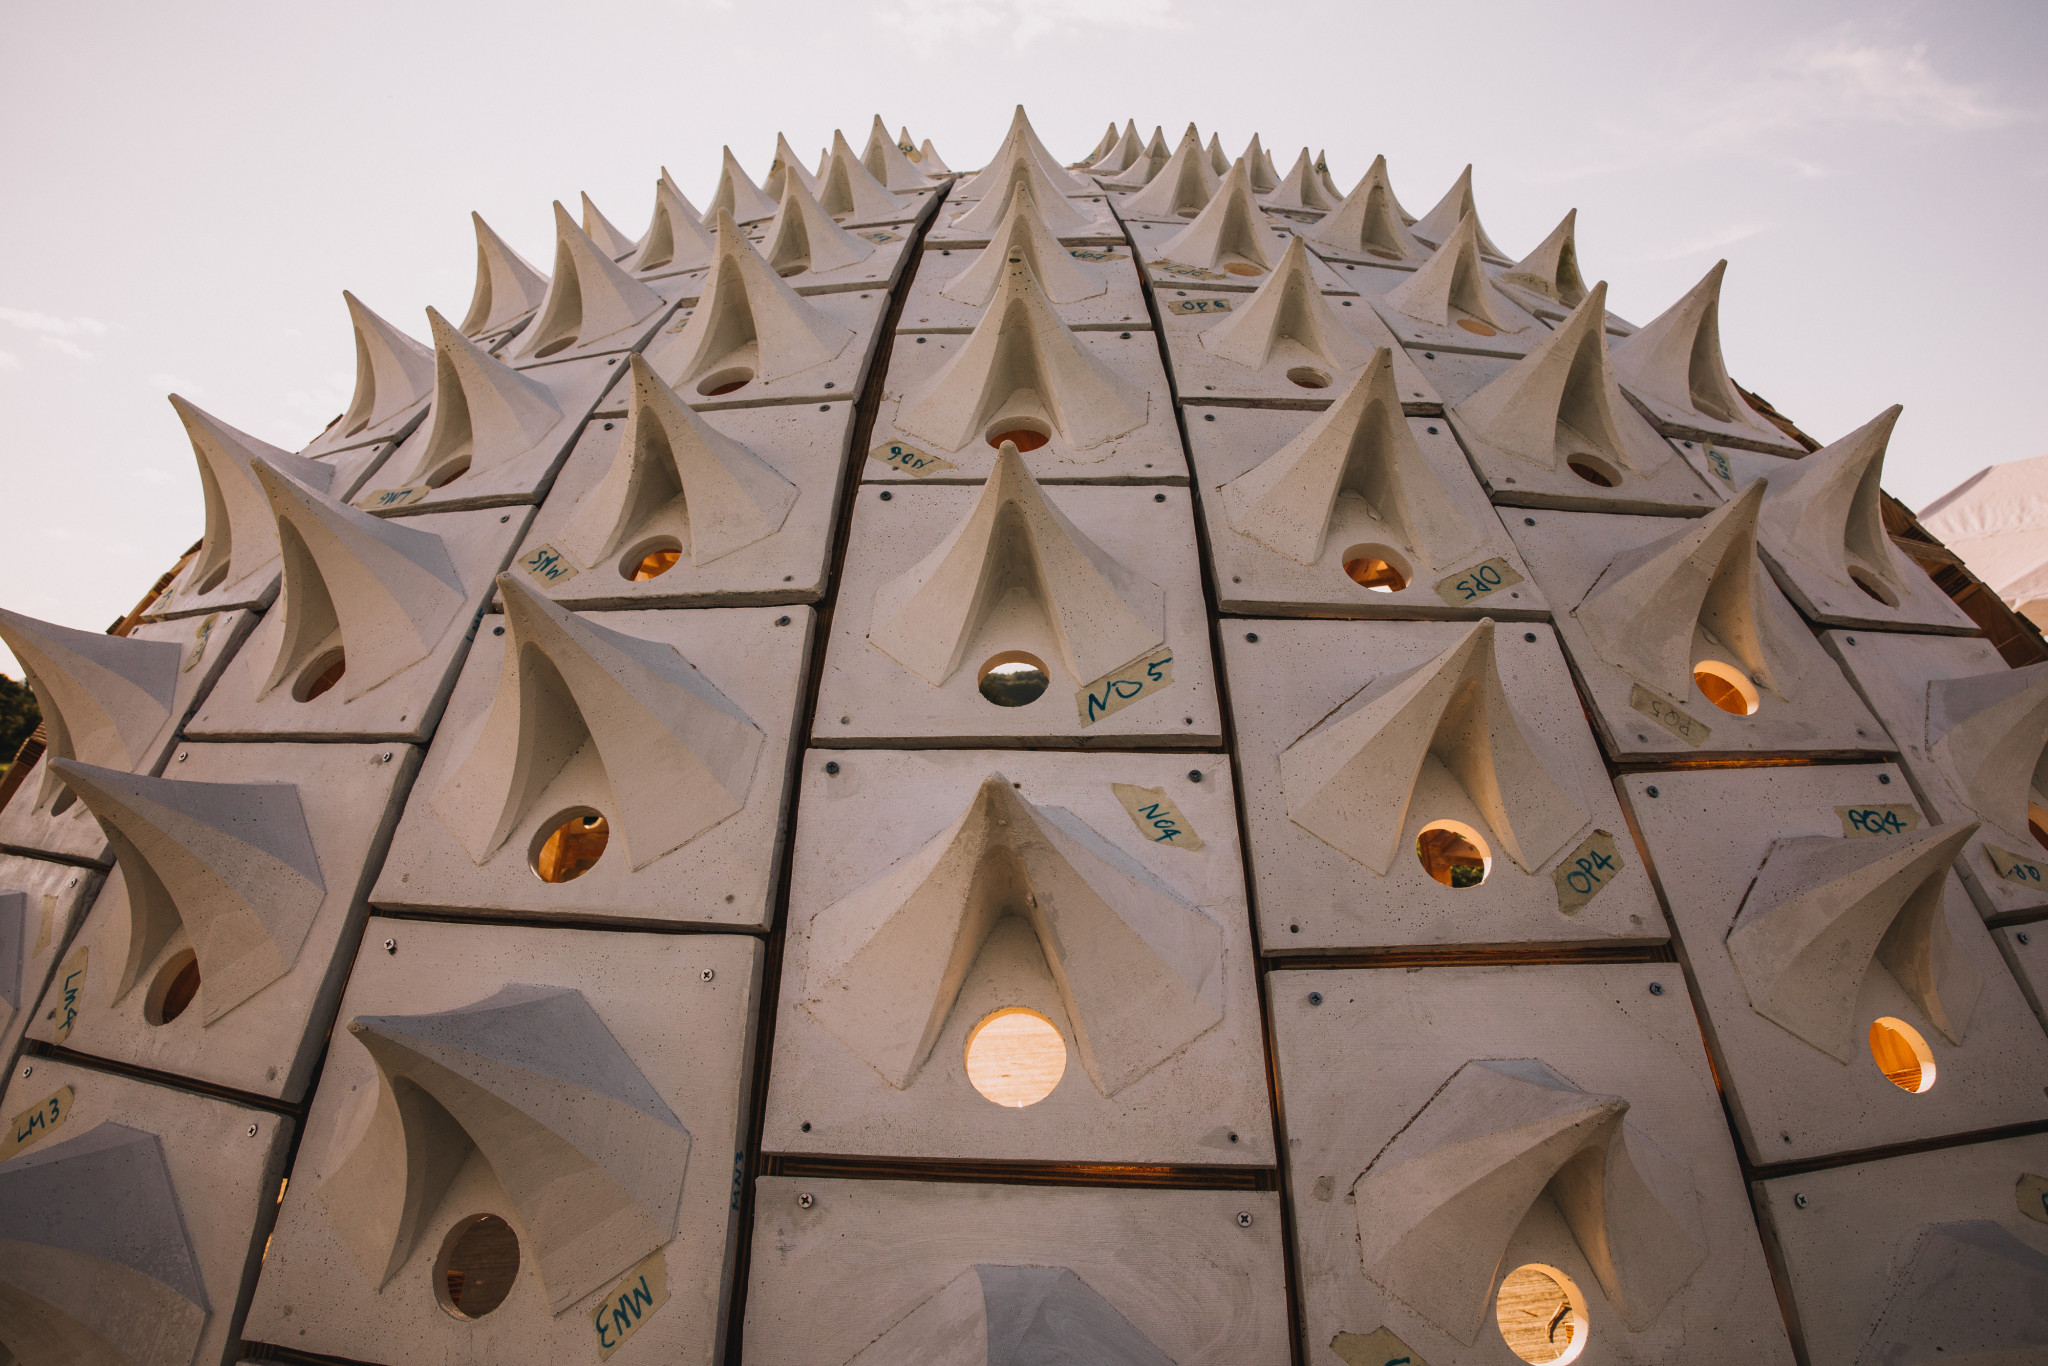 The spiked dome of the Pollinators Pavilion